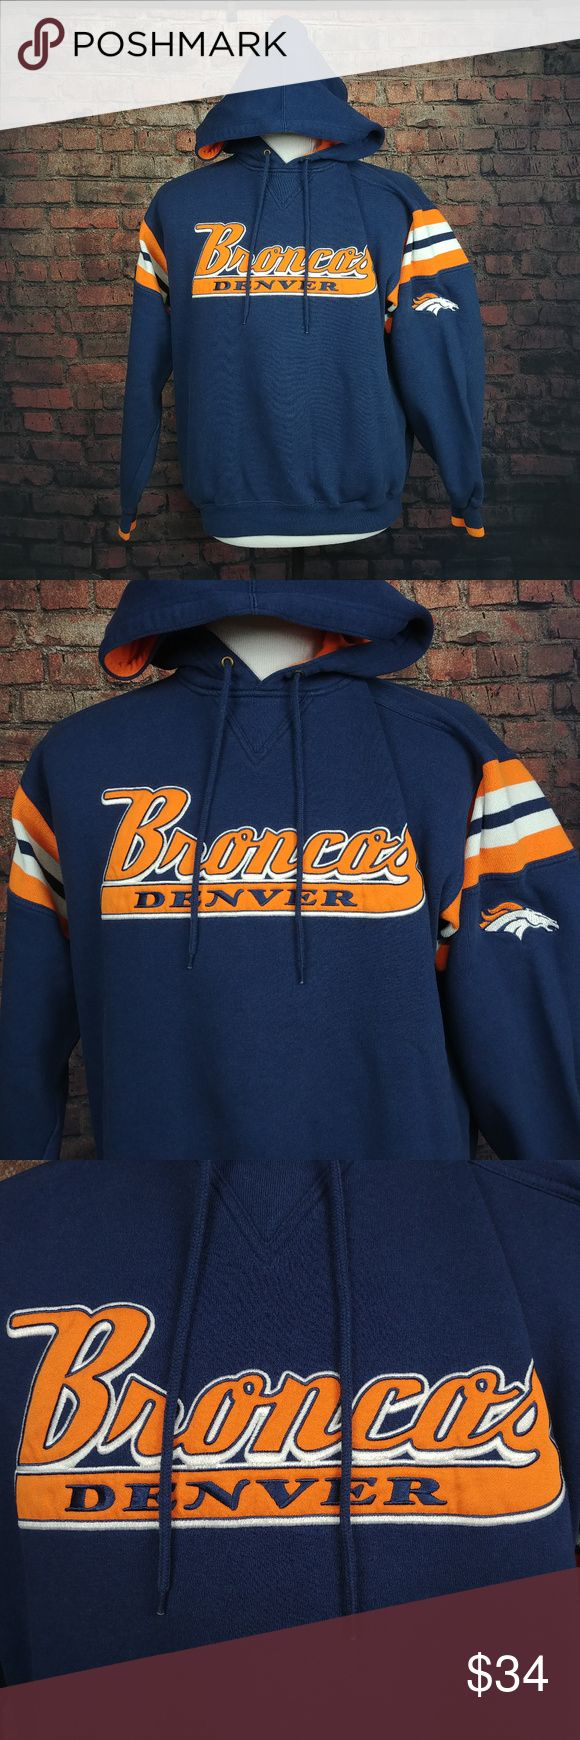 """VINTAGE Lee Sport Denver Broncos Hoodie Mens M VINTAGE Lee Sport Denver Broncos Hoodie Mens Medium Blue Orange Pullover Adult C18:02:W11-18:30:P:M:0  Good Condition! (See Photos).  Item Dimensions (Approximately):      25"""" - Pit to Pit     26"""" - Item Length (Front Side Neckline to Bottom)  Questions? Please ask, I try to respond immediately!   I ship daily to get you your item ASAP!   Just a common guy bringing you great deals, superb customer service is my goal.  -Cooper @ CoopsThrifts…"""